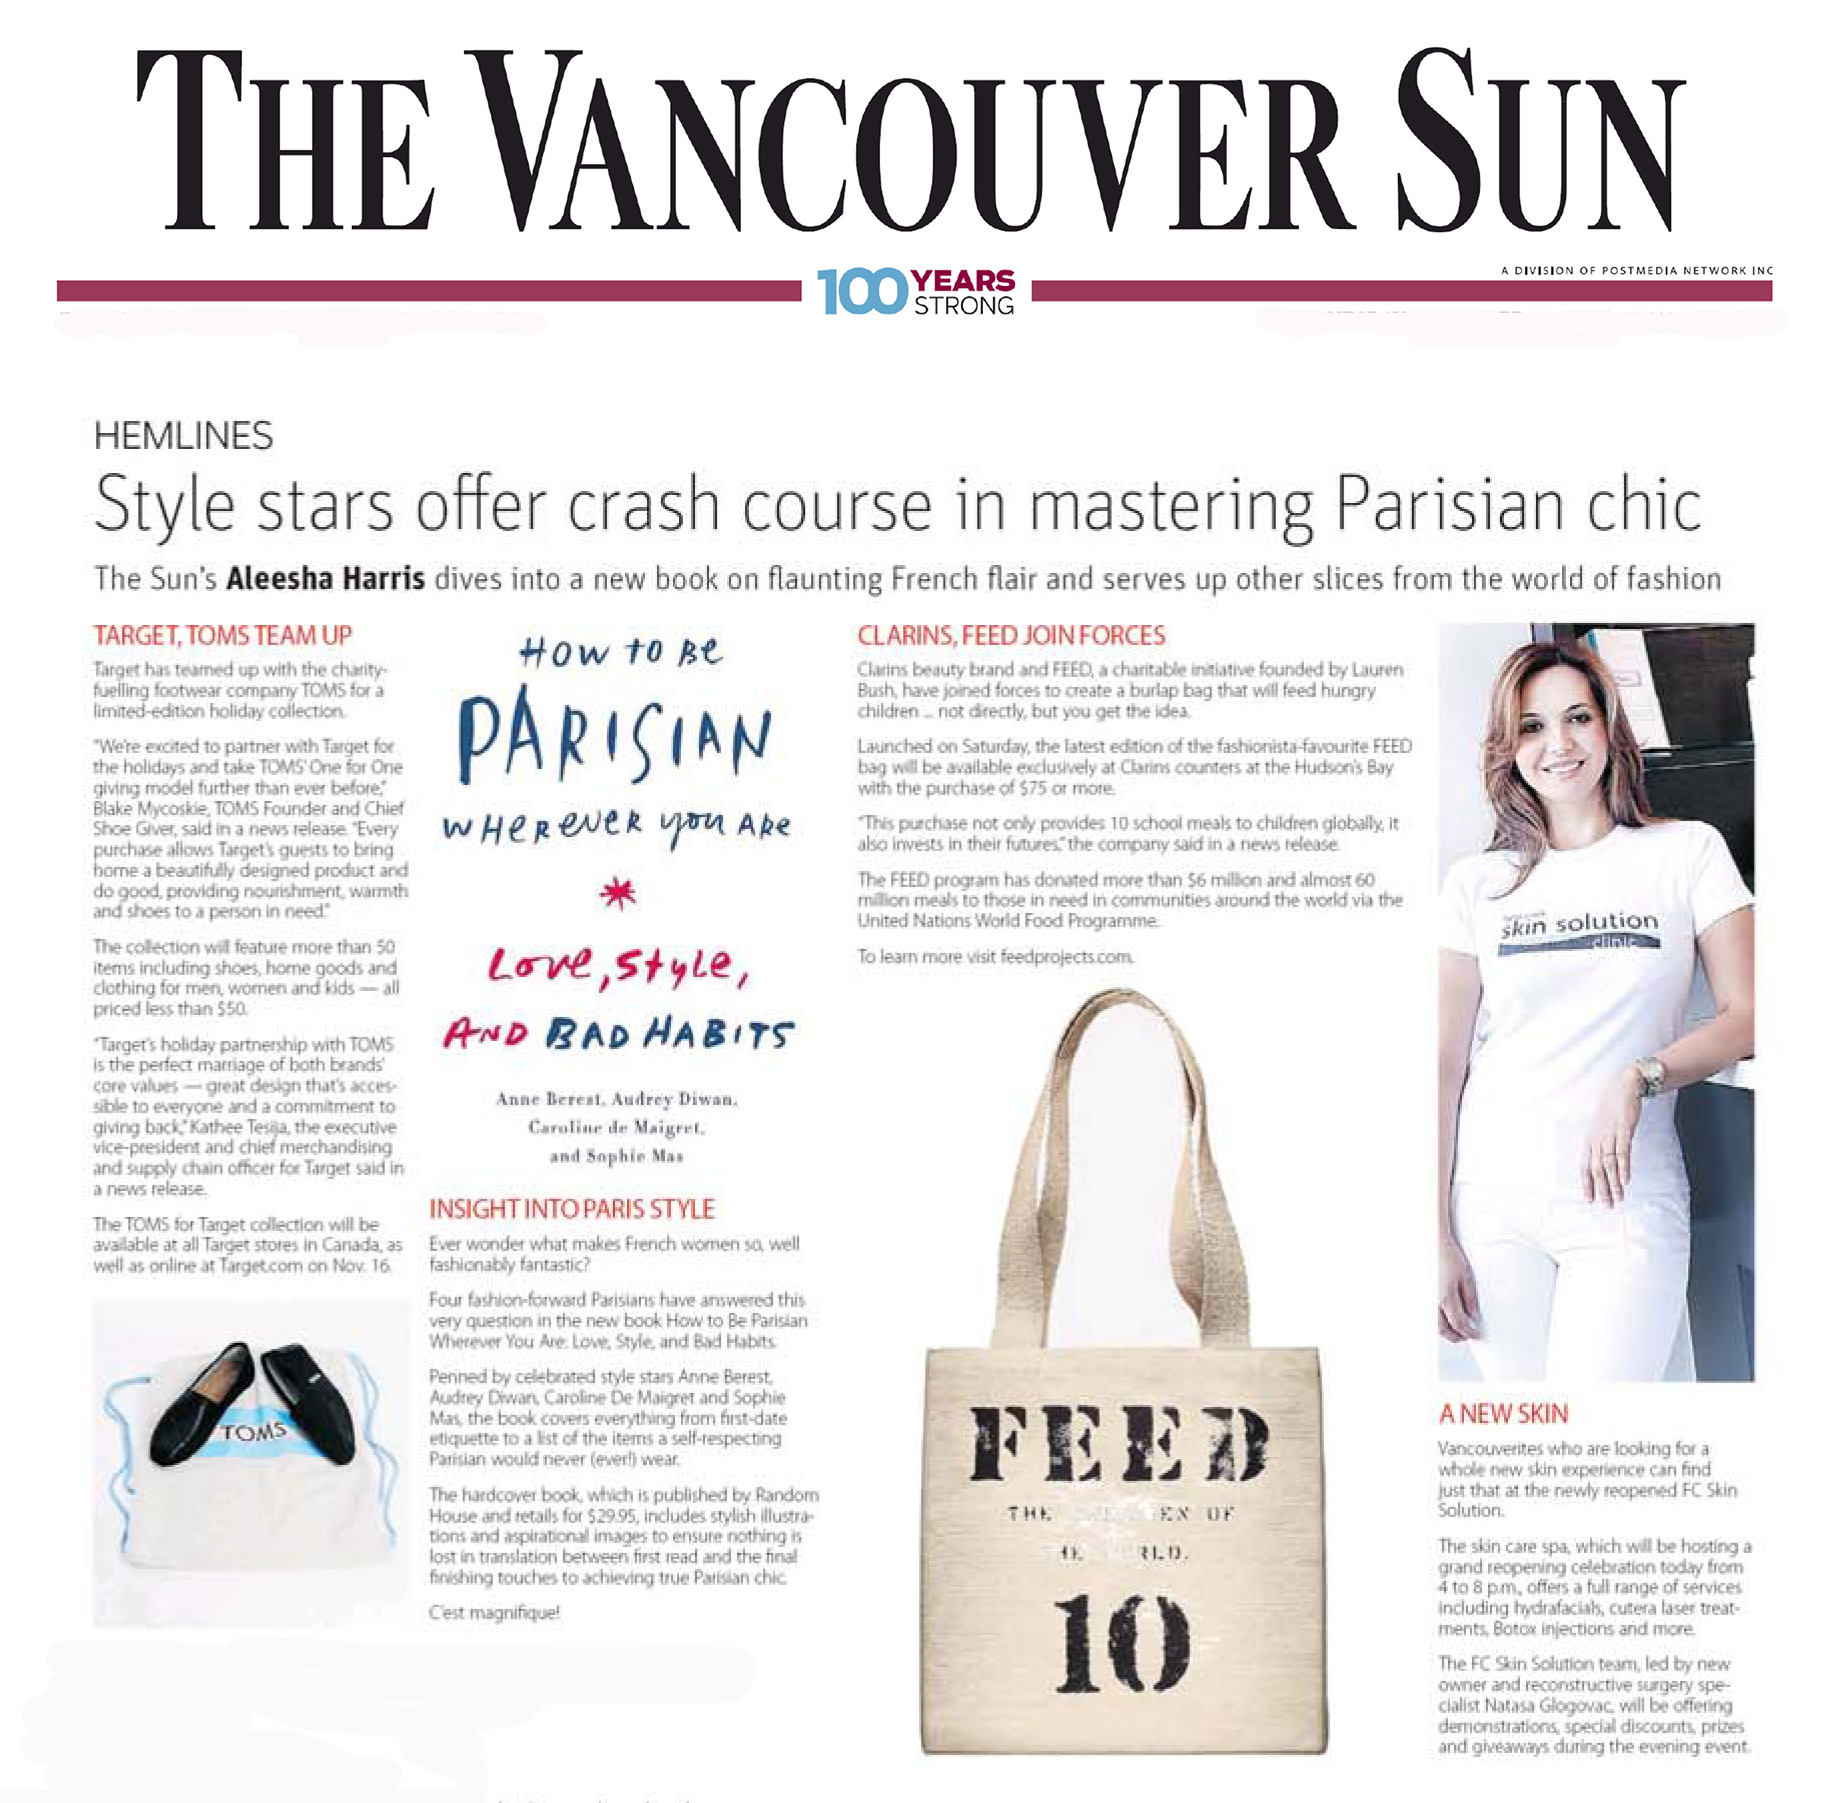 vancouver sun - skin solution